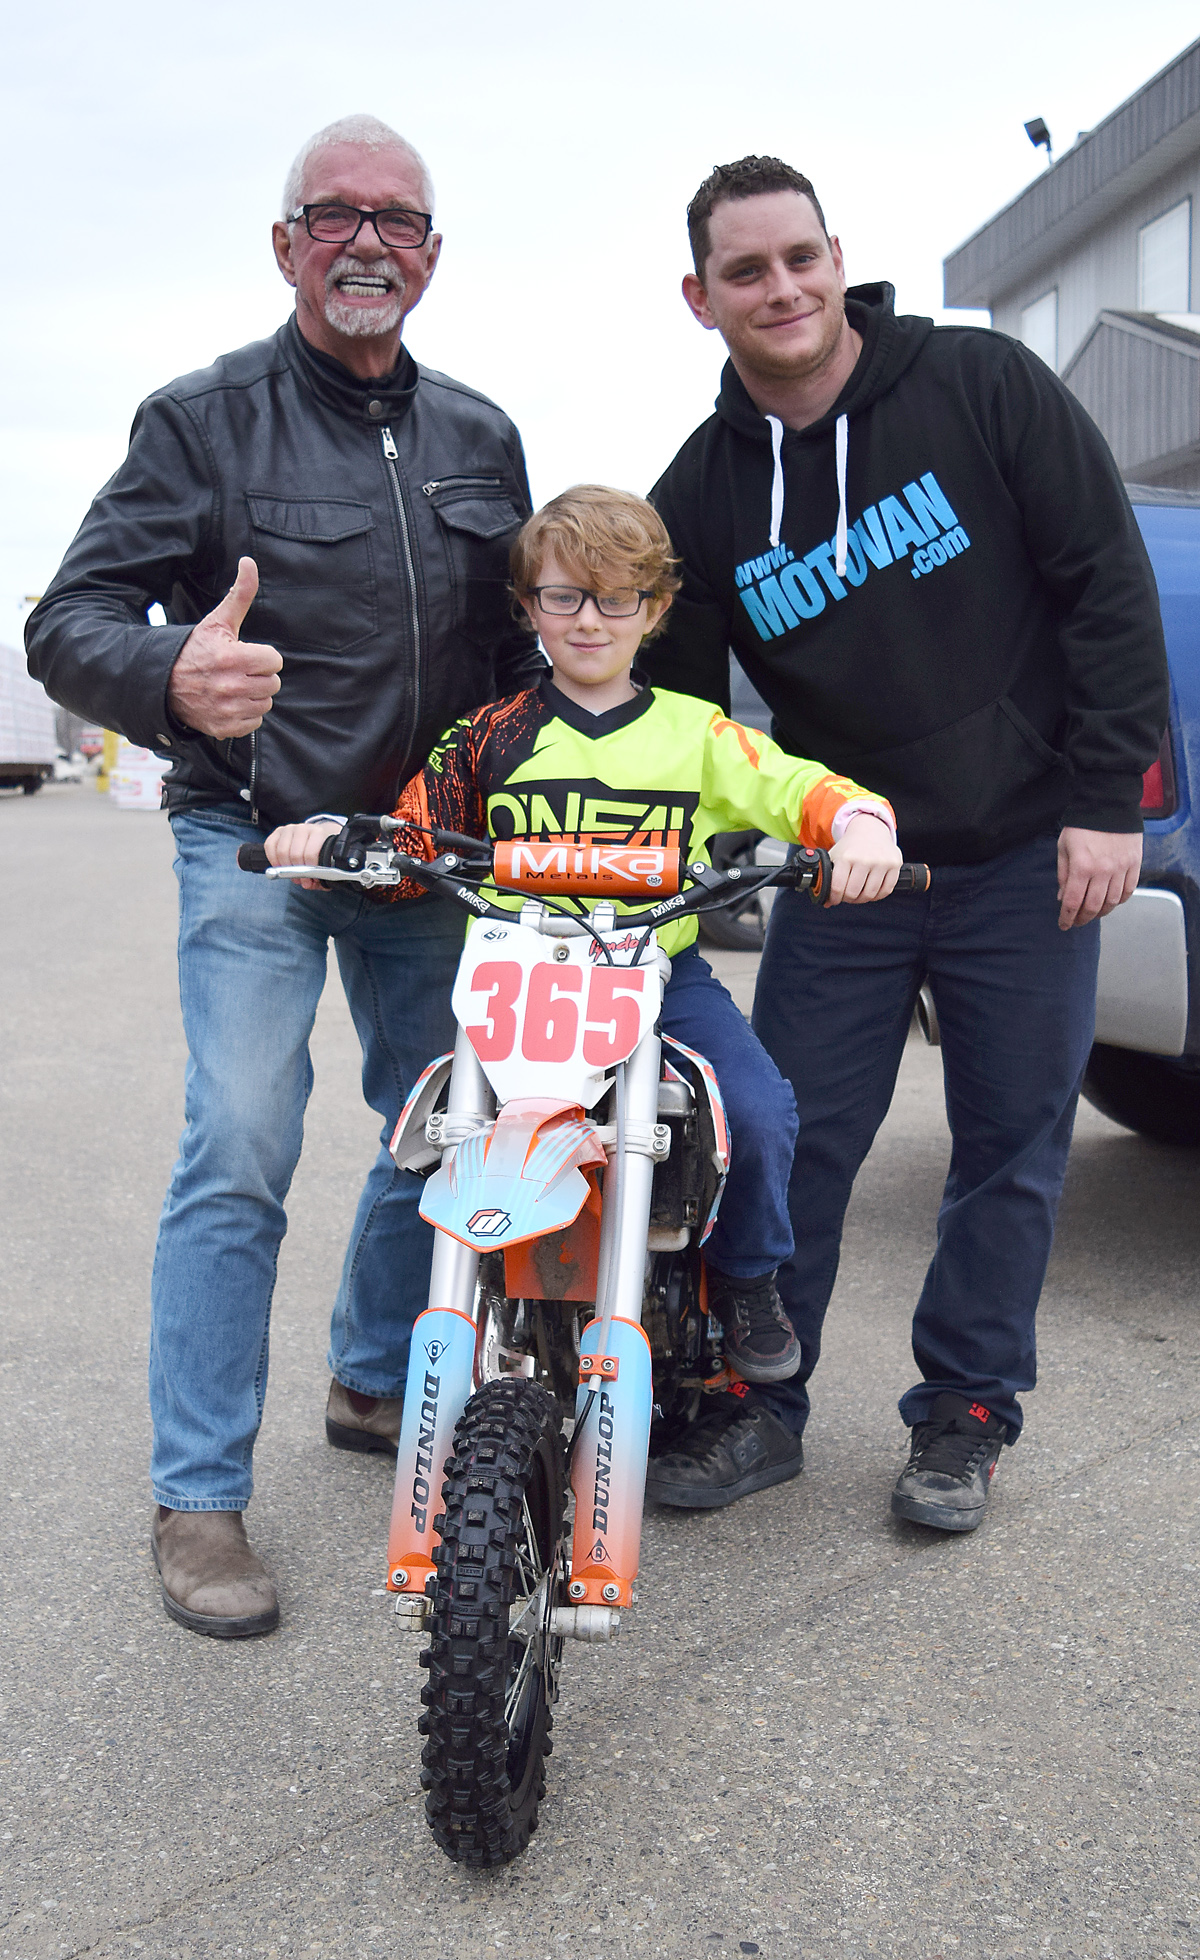 Motocross racer Lyndon Patenaude with his father Trevor (right) and one of his sponsors John Brink. Bill Phillips photo